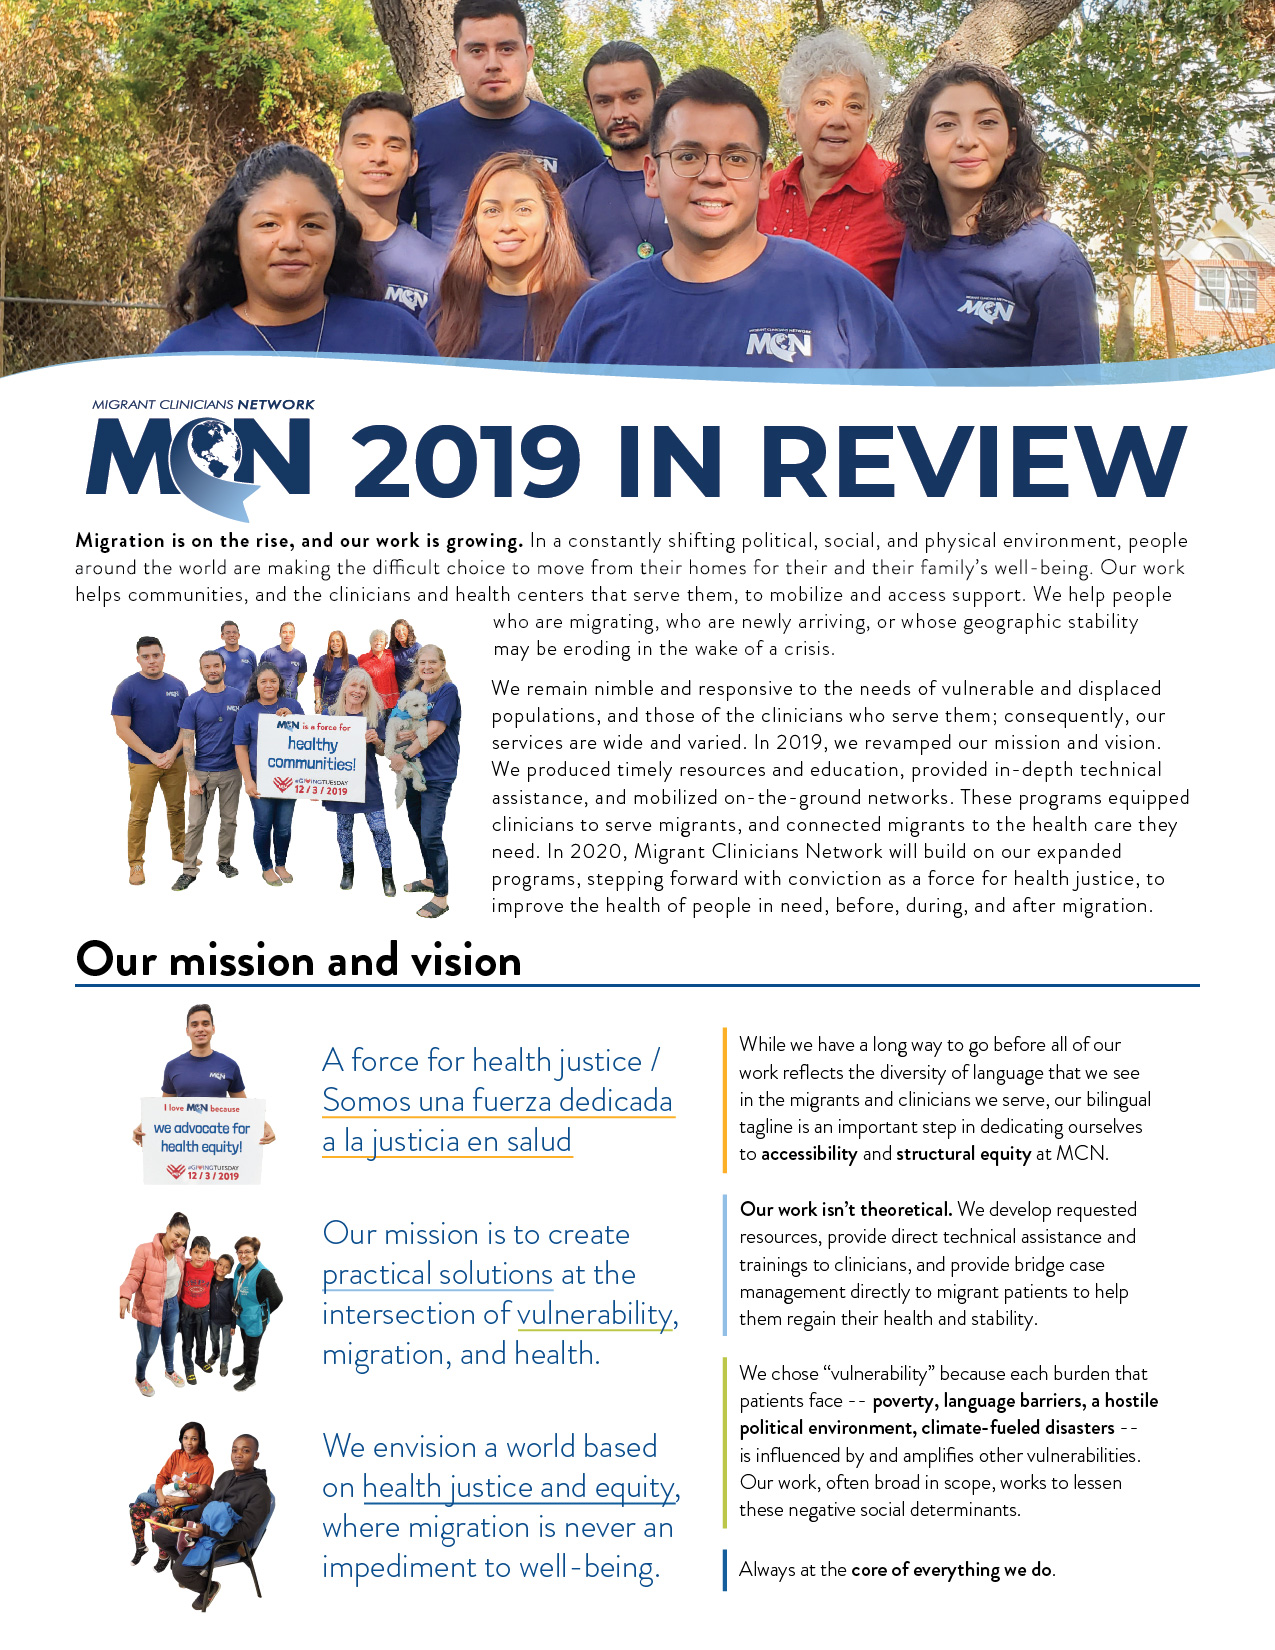 Our Mission and Vision page of the Year in Review